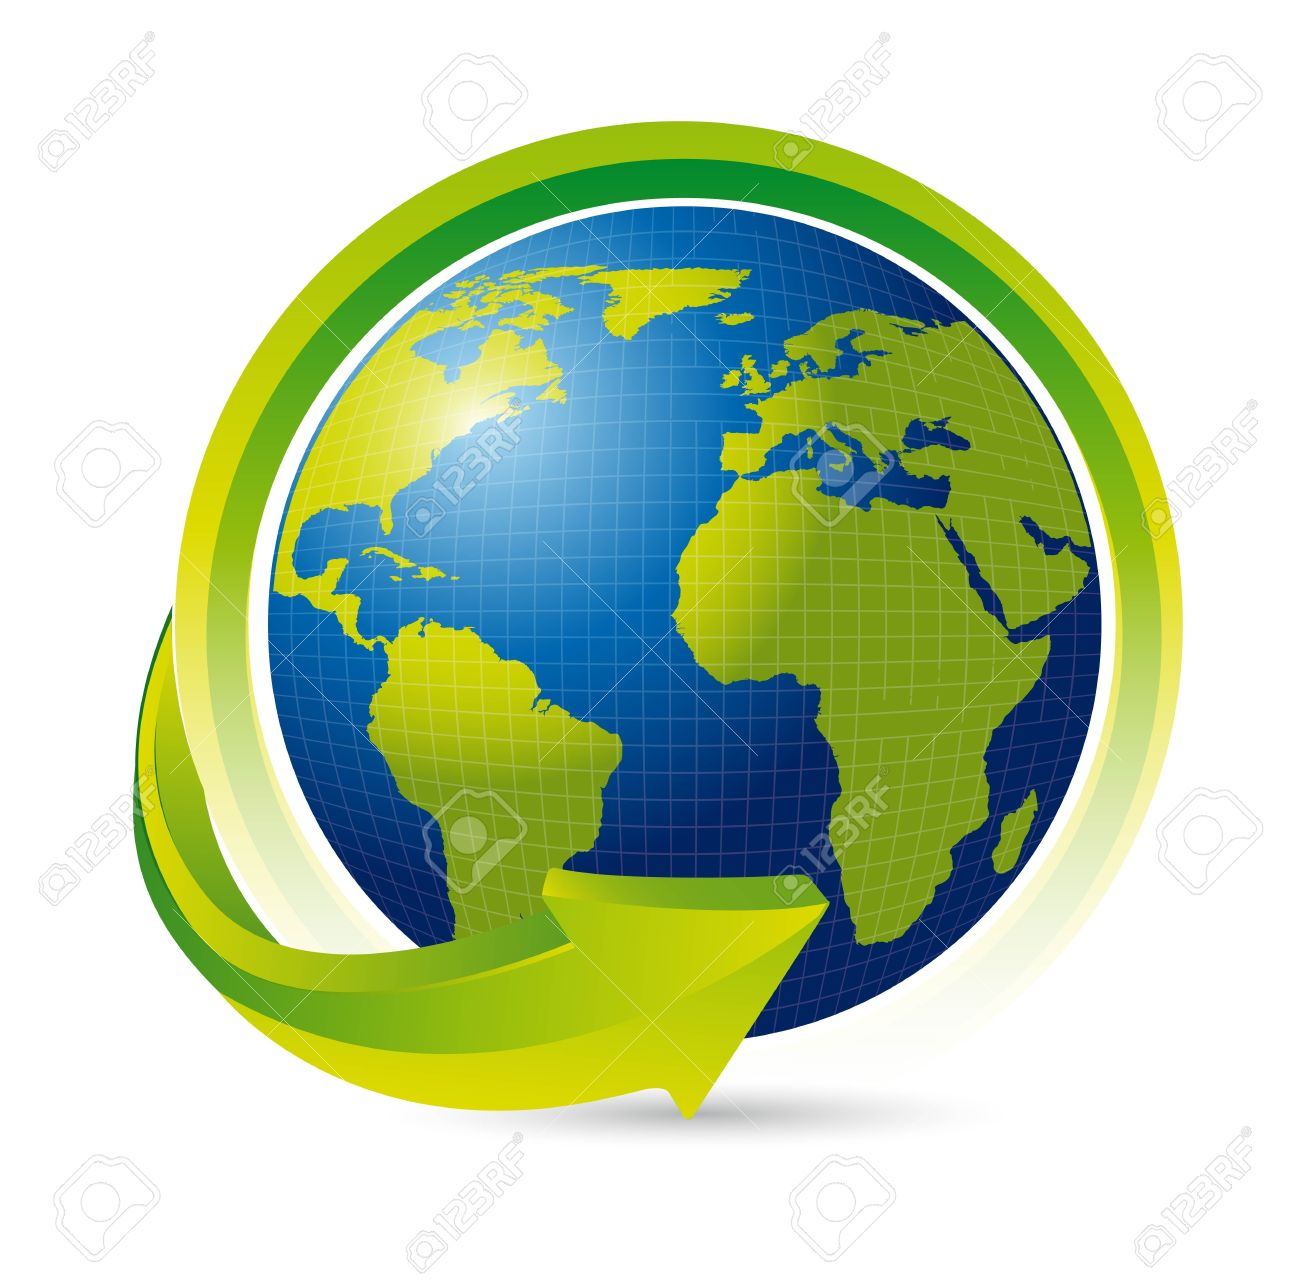 Clipart globe with arrow clipart free stock Earth With Arrow Over White Background. Royalty Free Cliparts ... clipart free stock